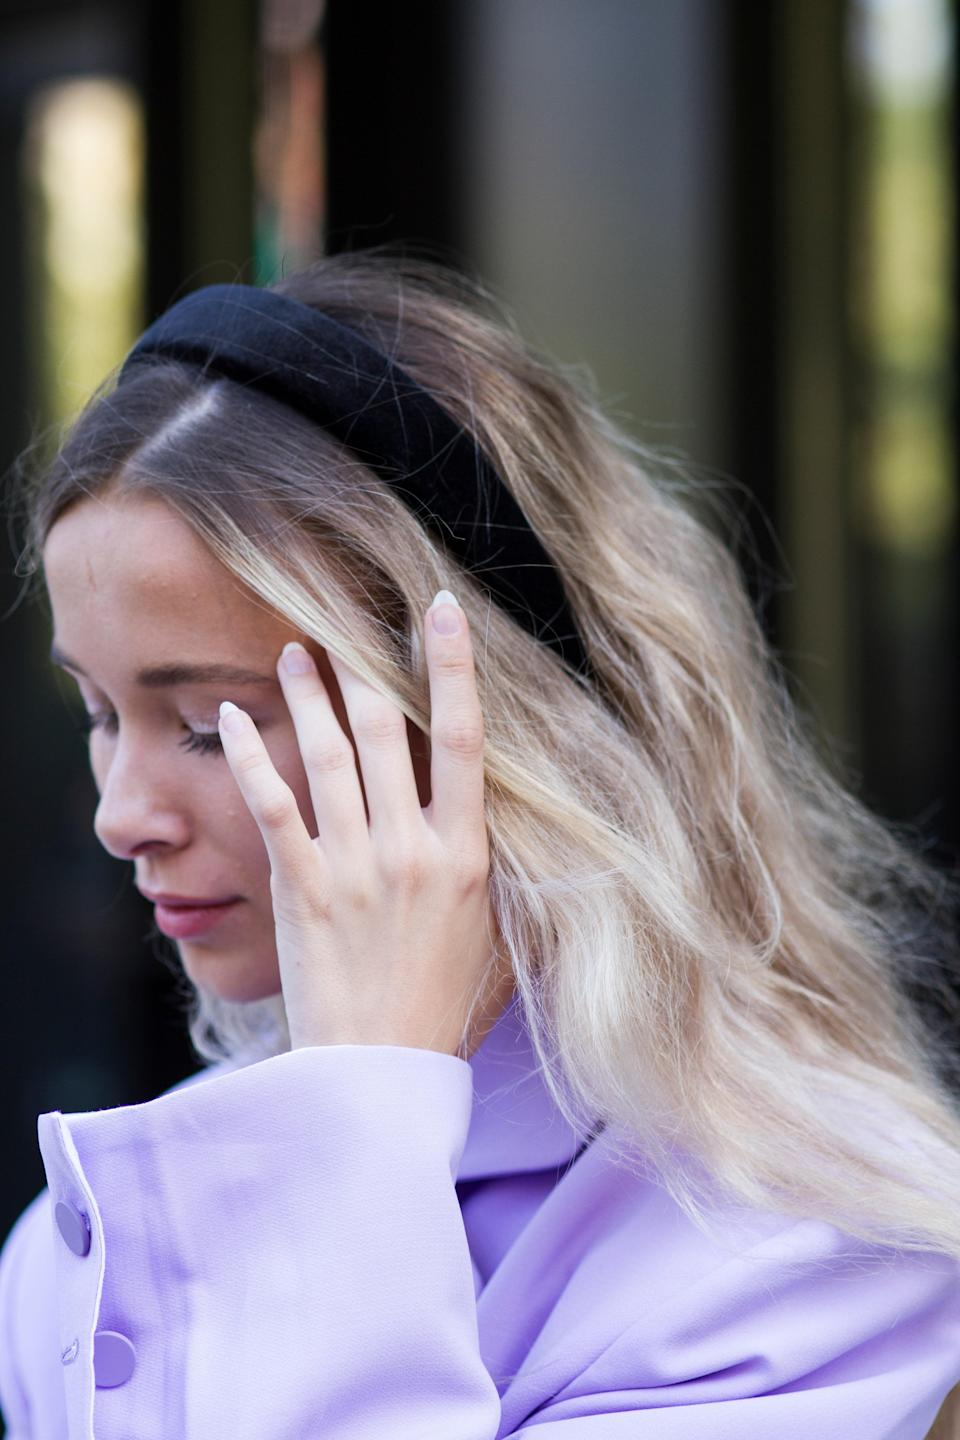 "A simple black padded headband (<a href=""https://www.amazon.com/Black-Padded-Velvet-Alice-Headband/dp/B01HGF8Q66"" rel=""nofollow noopener"" target=""_blank"" data-ylk=""slk:like this one from Amazon"" class=""link rapid-noclick-resp"">like this one from Amazon</a>) instantly elevates any outfit."